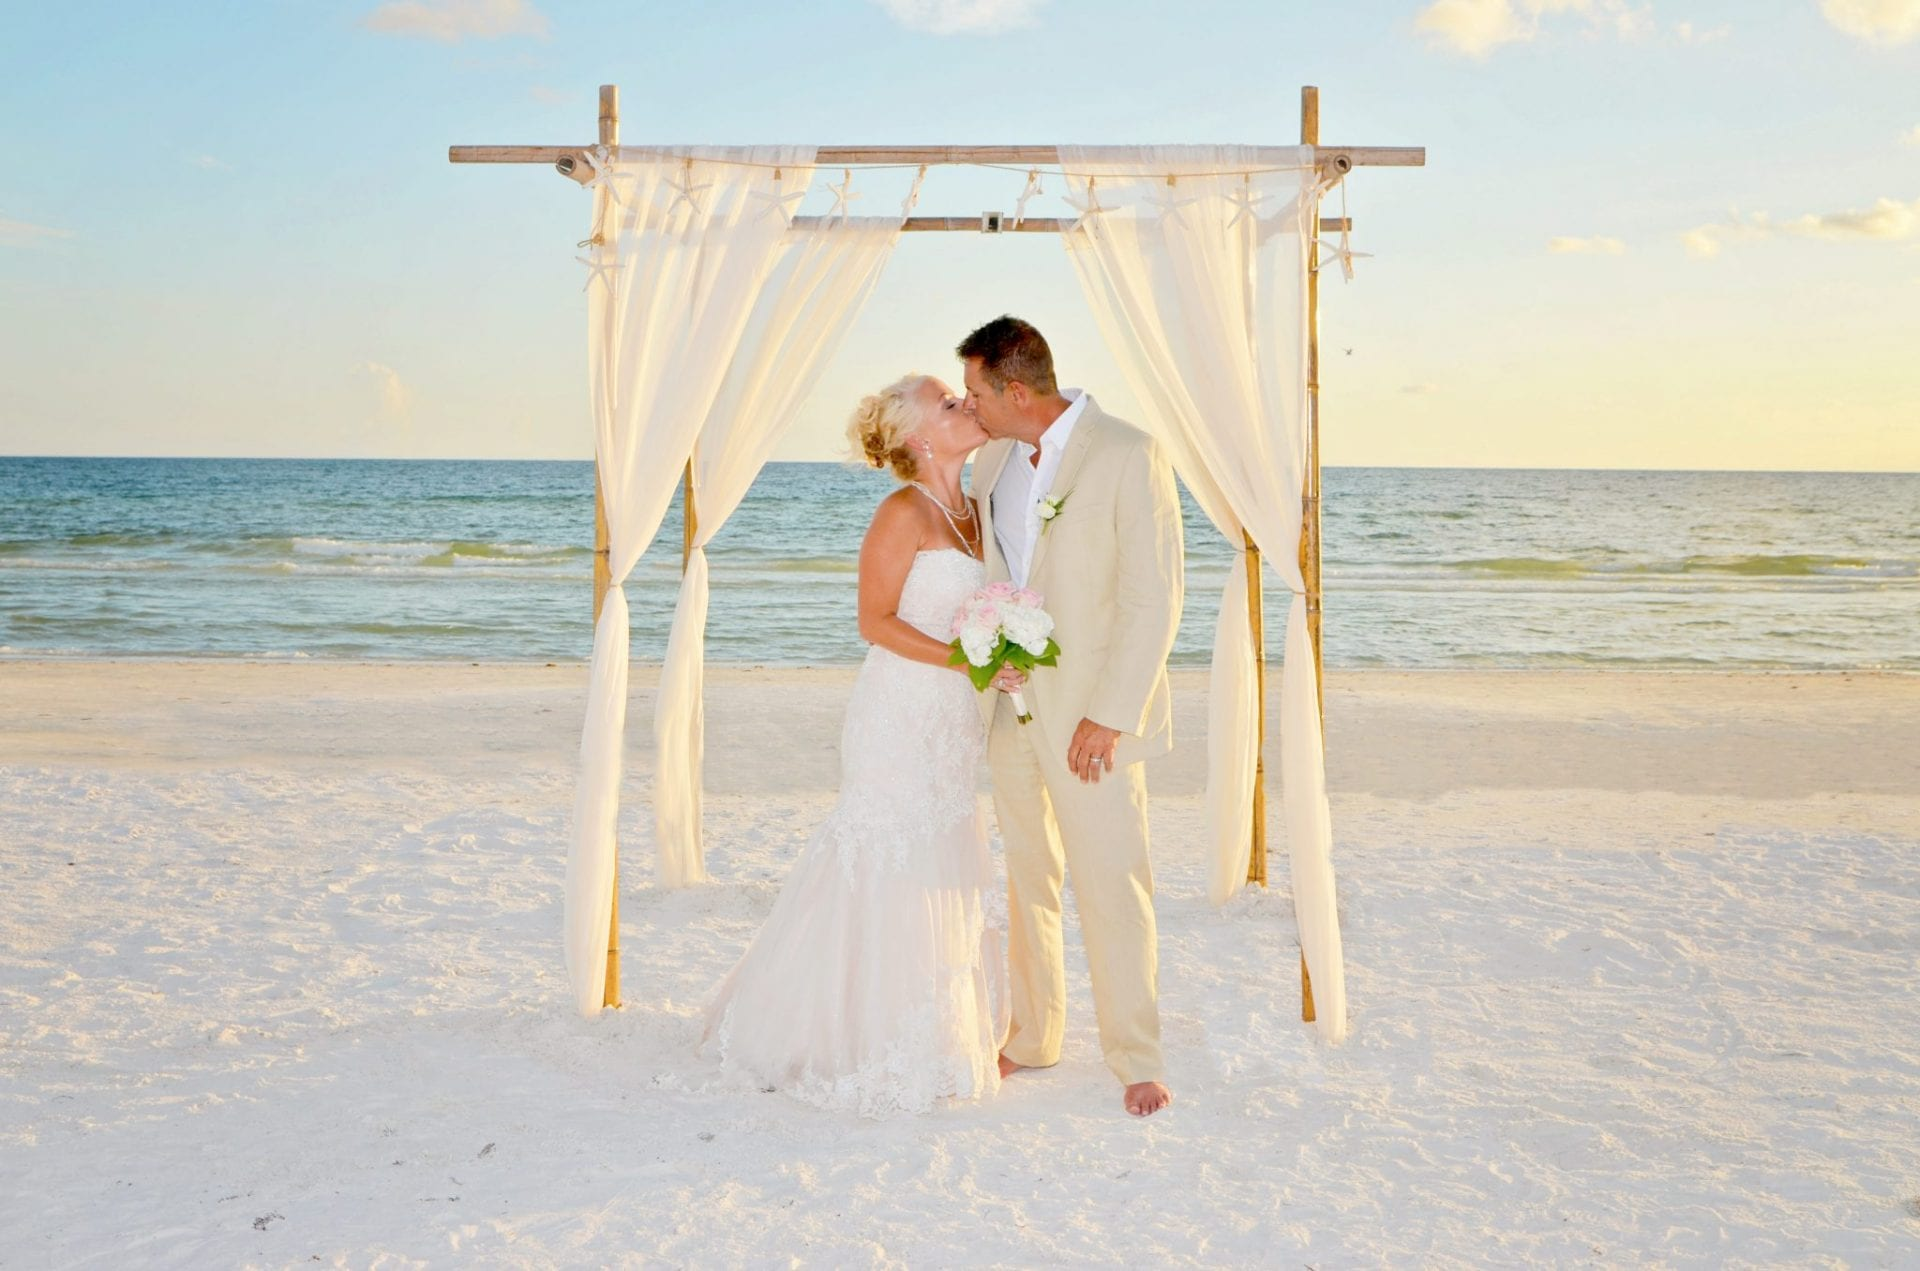 This bride and groom enjoy their Florida Beach Elopements while sharing a kiss under the bamboo canopy.